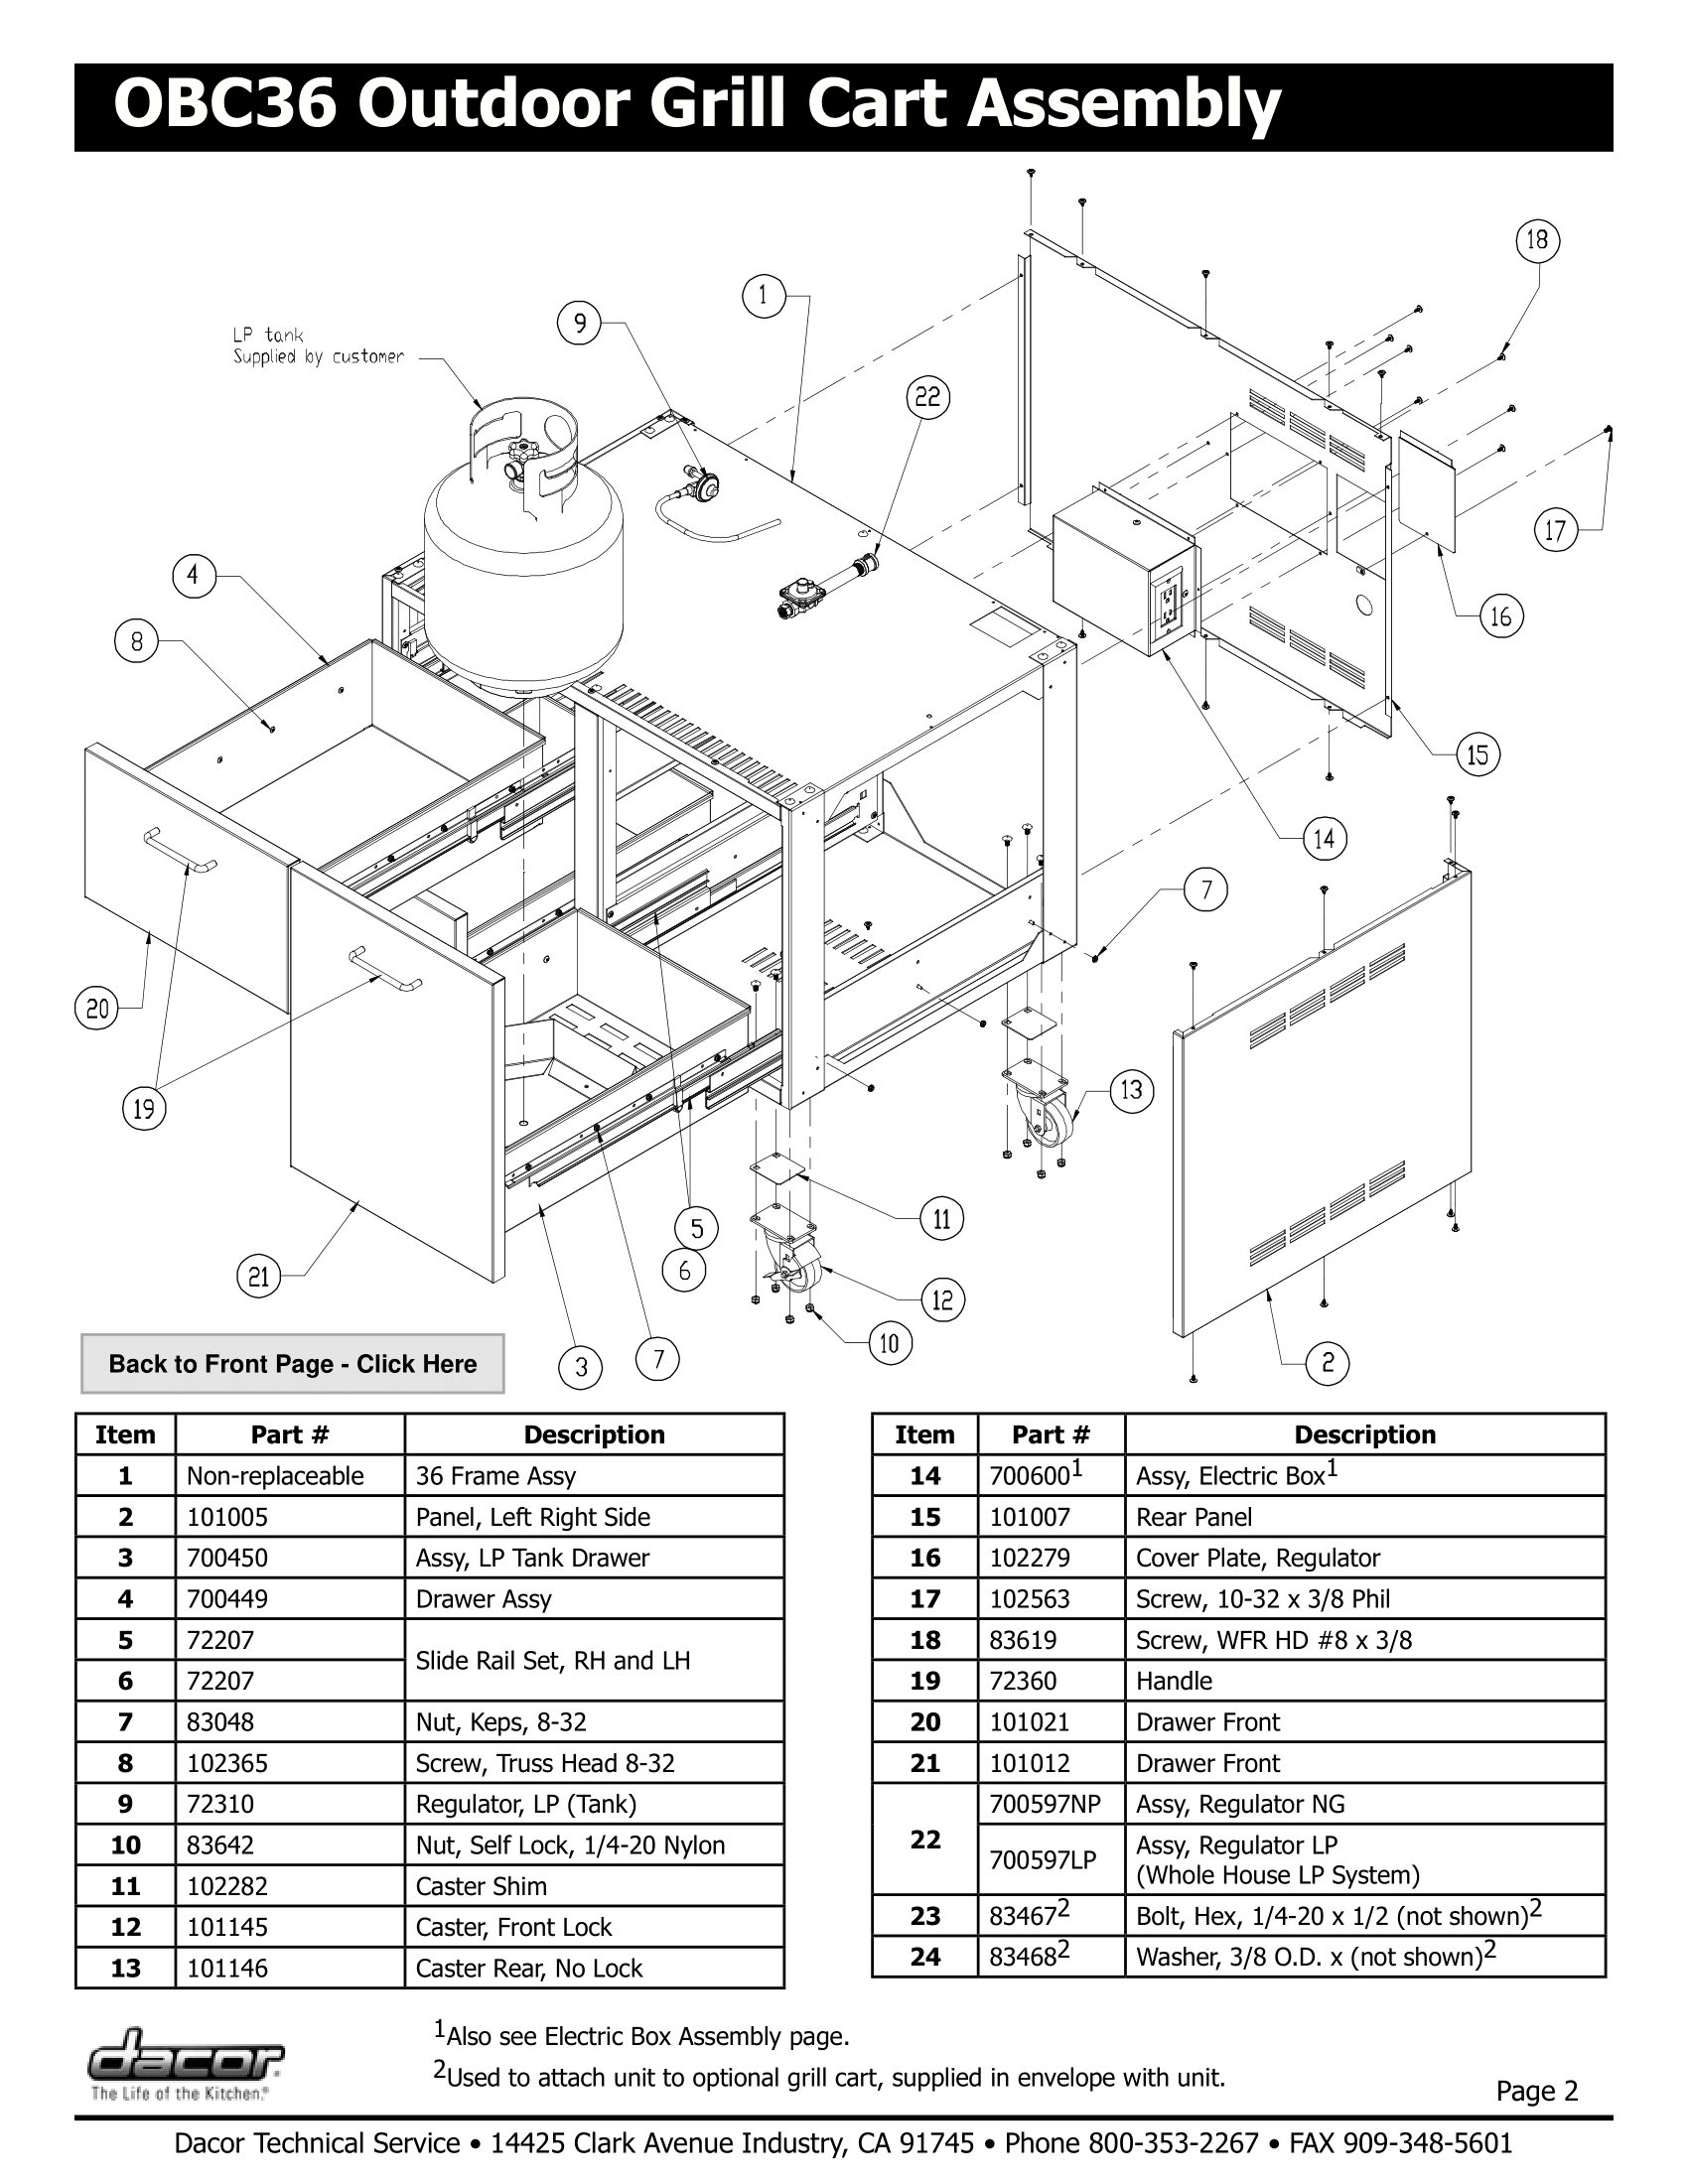 Dacor OBC36 Assembly Schematic